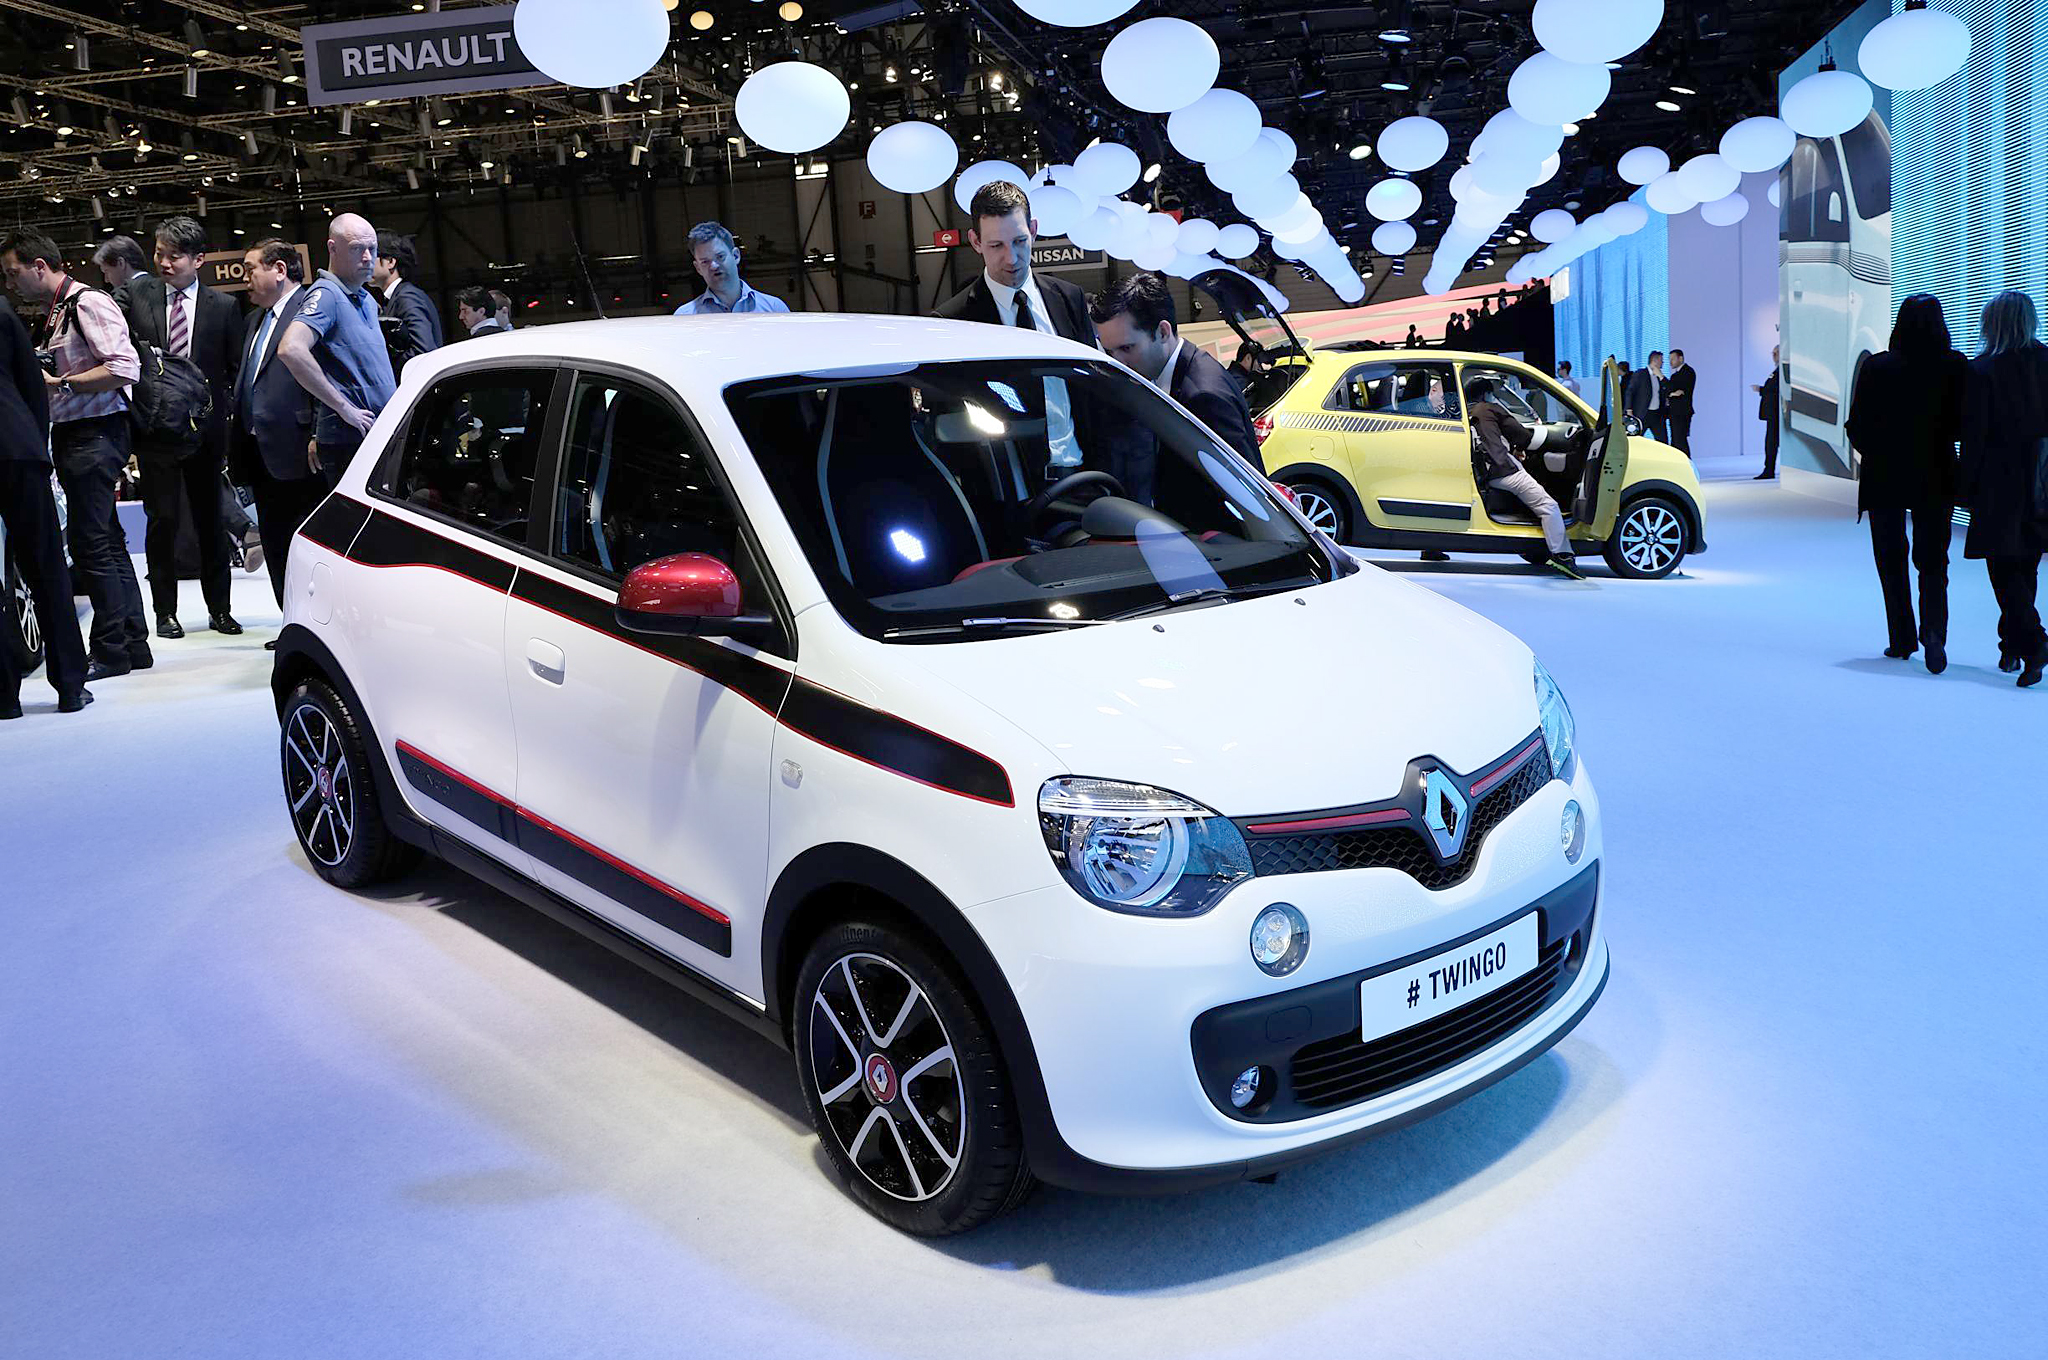 All-New 2015 Renault Twingo Auto Show